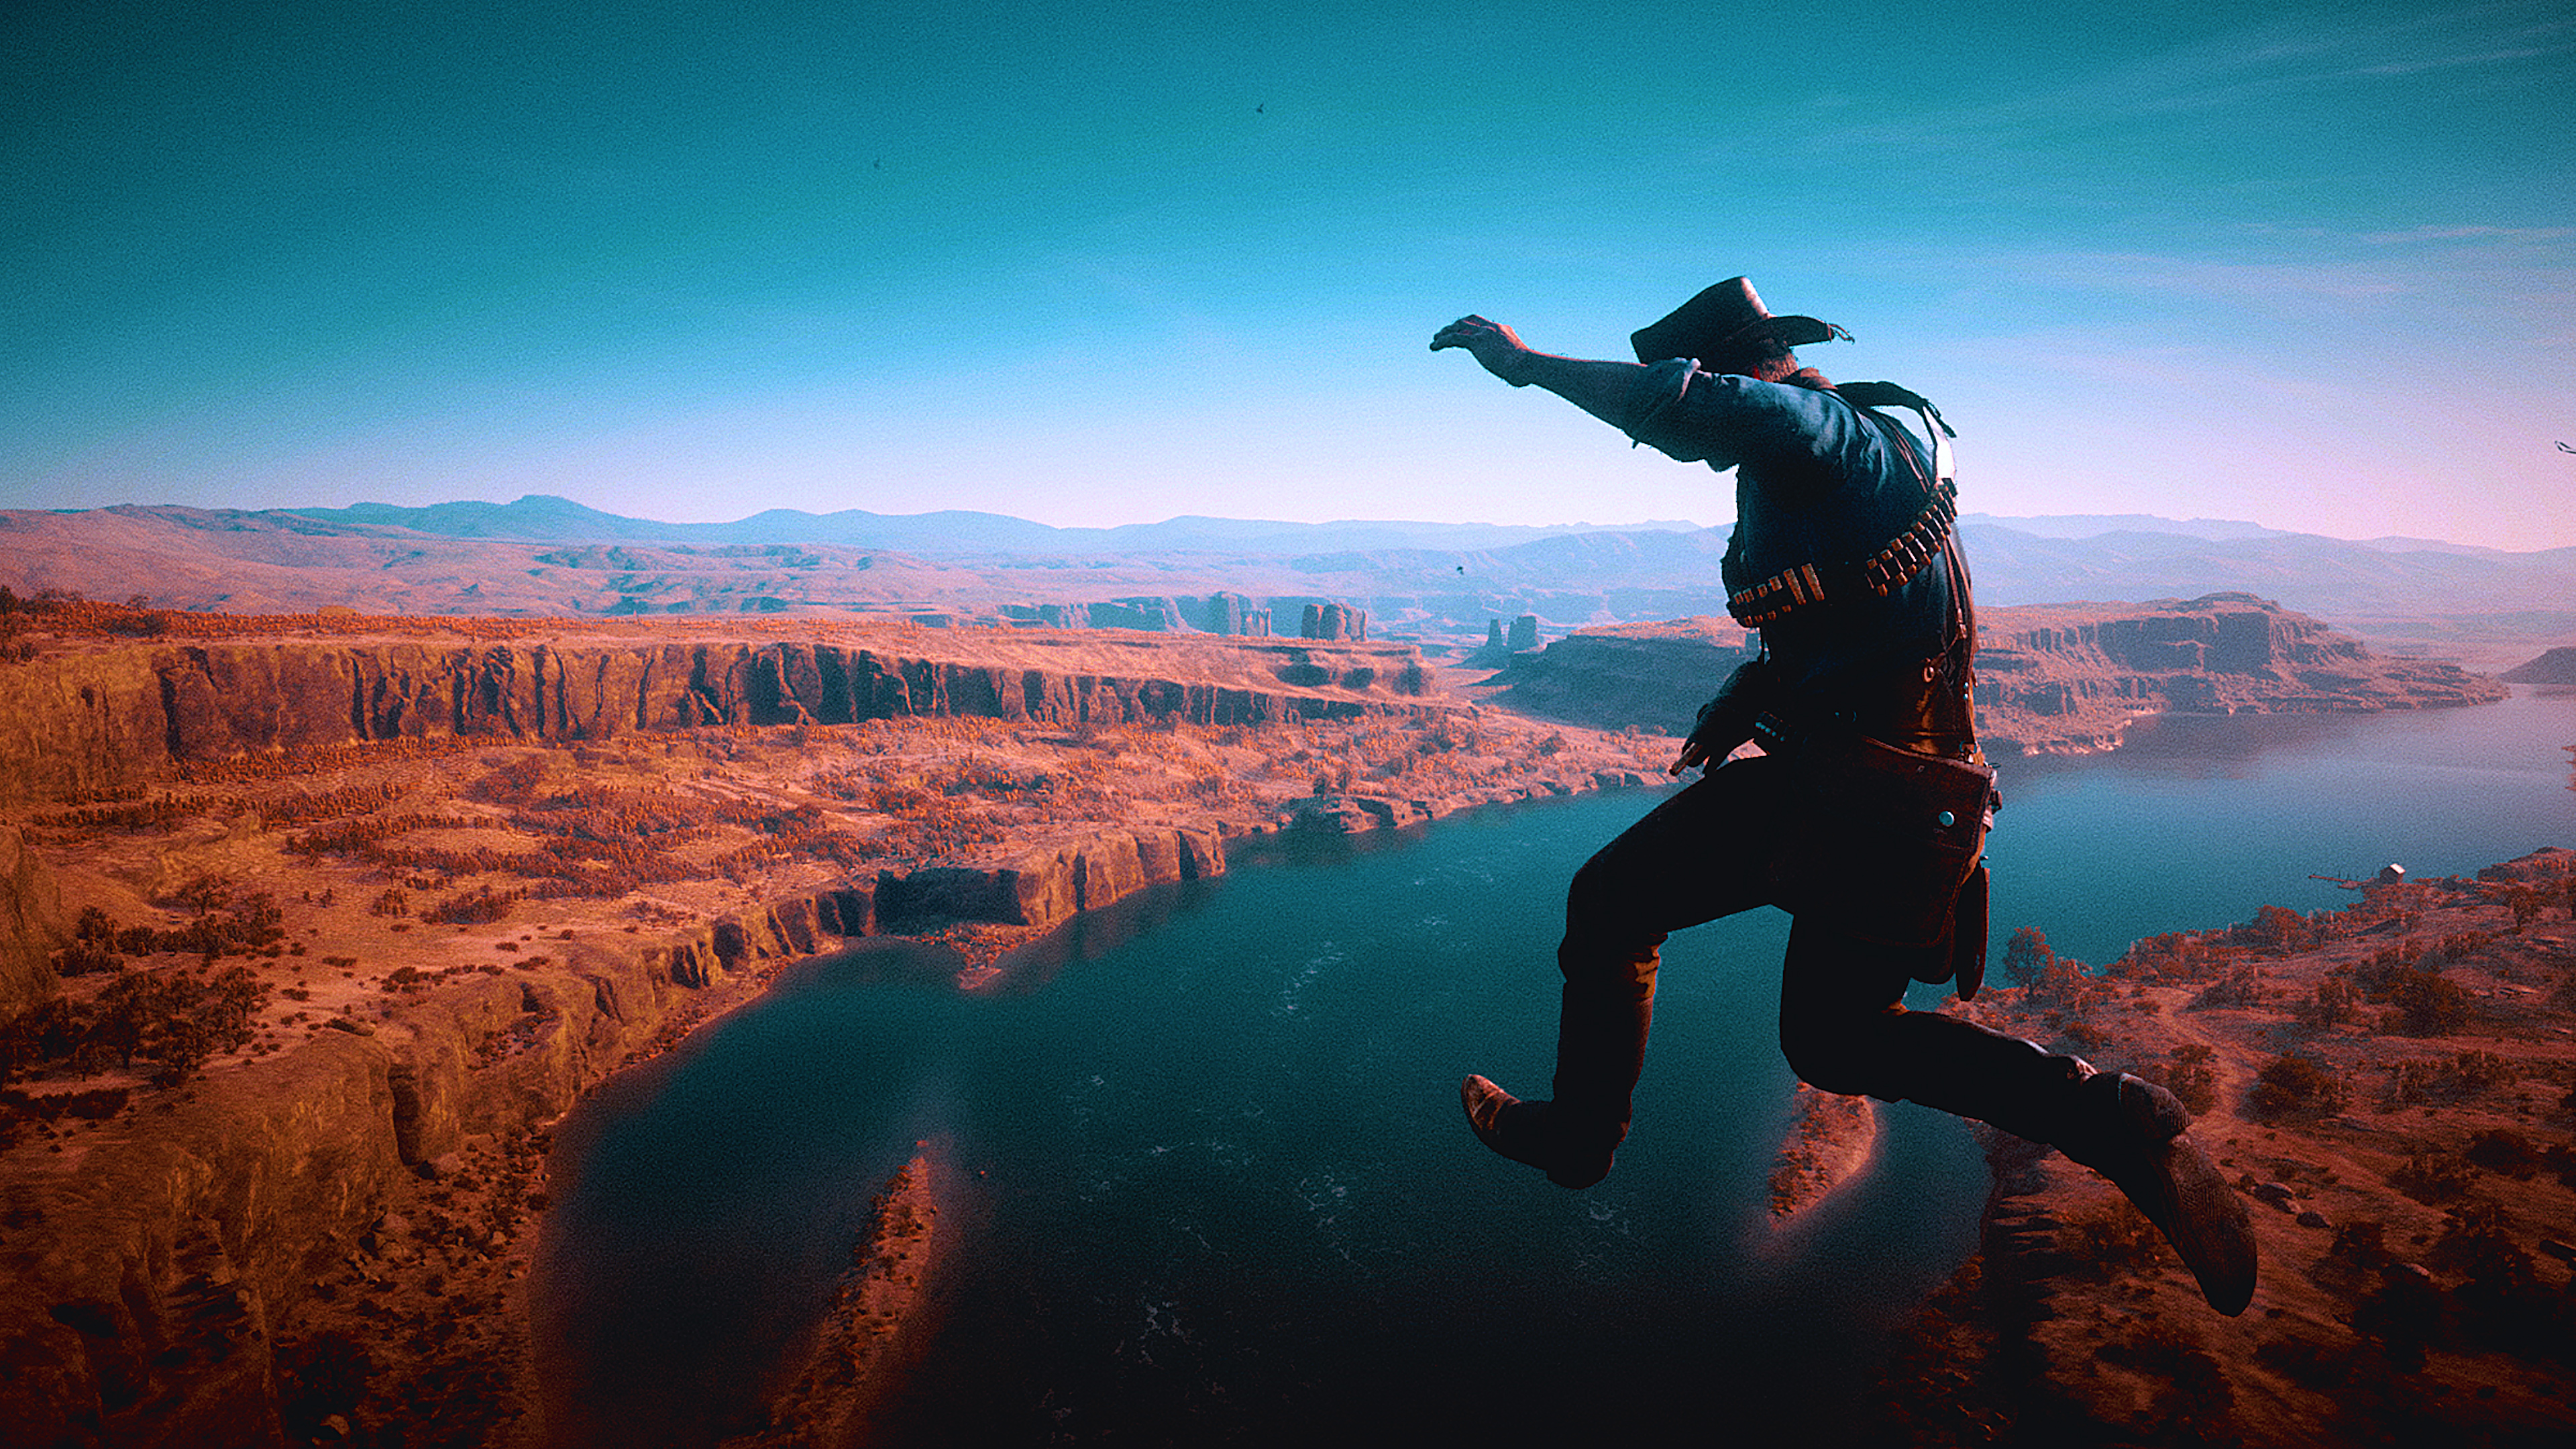 General 3840x2160 Red Dead Redemption 2 landscape western video games PC gaming sky screen shot